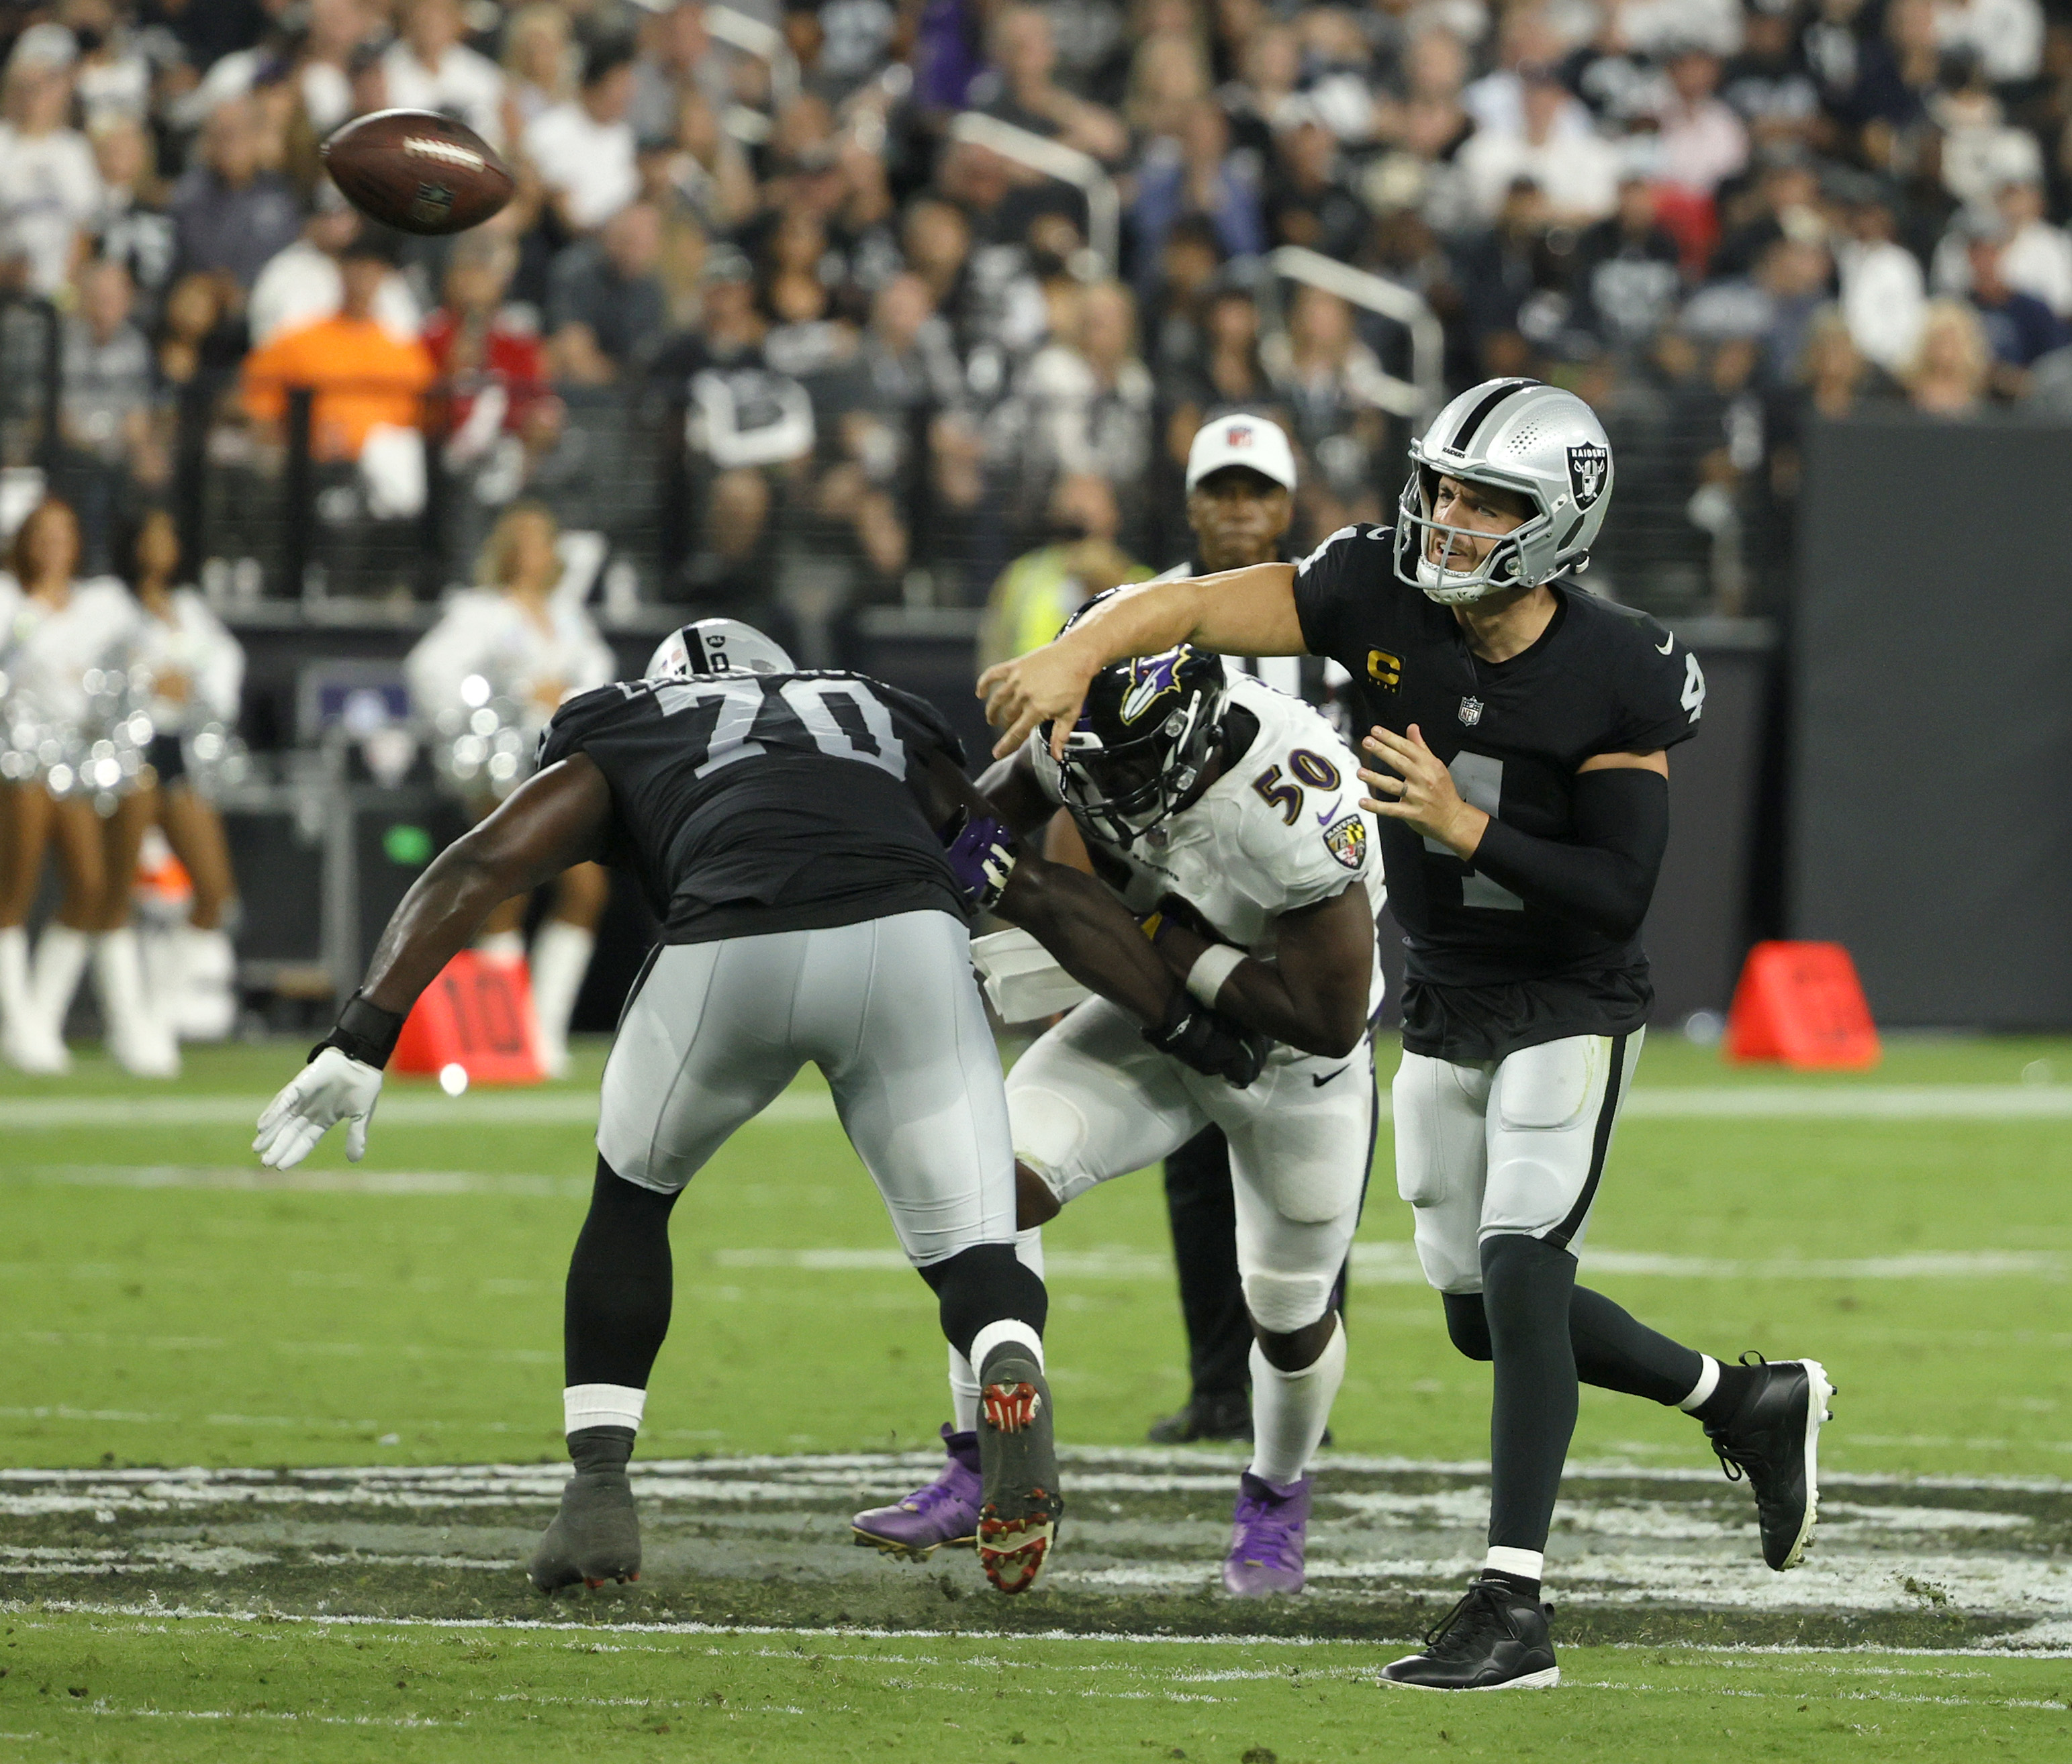 Quarterback Derek Carr #4 of the Las Vegas Raiders throws as offensive tackle Alex Leatherwood #70 of the Raiders blocks linebacker Justin Houston #50 of the Baltimore Ravens during their game at Allegiant Stadium on September 13, 2021 in Las Vegas, Nevada. The Raiders defeated the Ravens 33-27 in overtime.